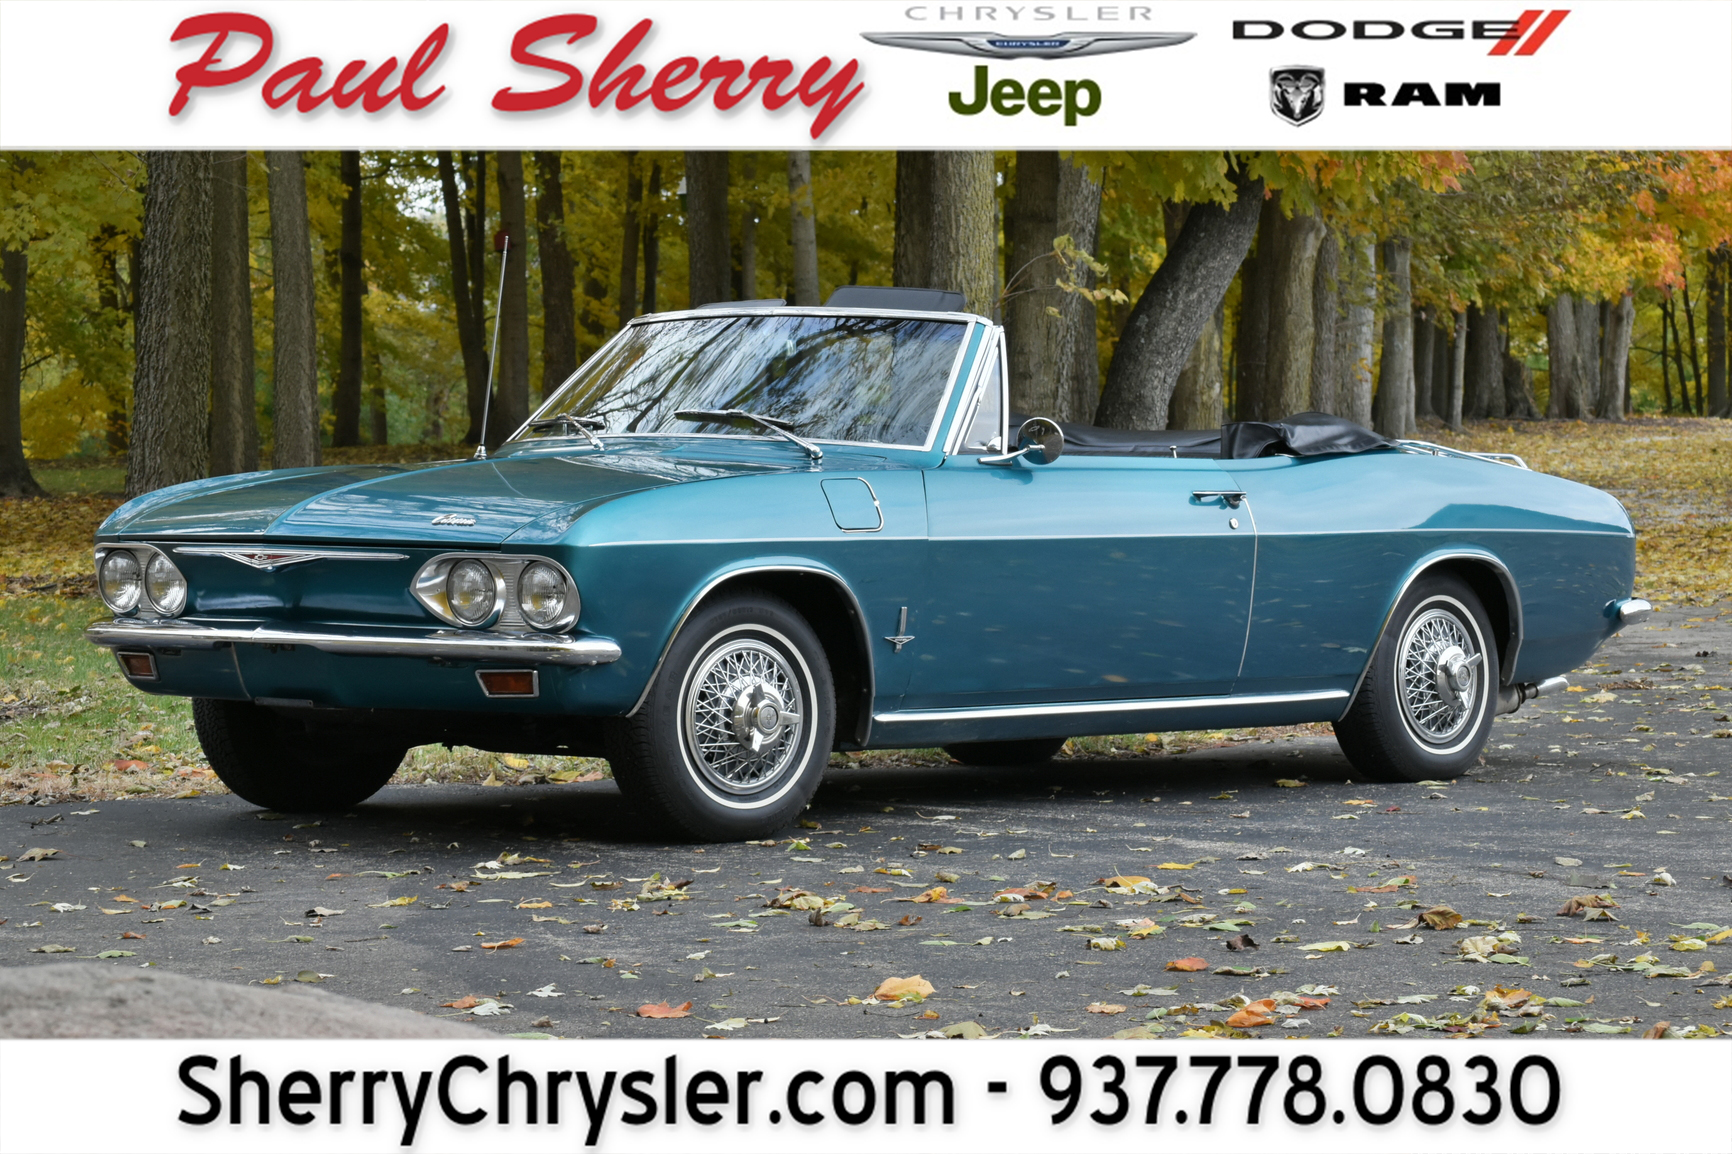 hight resolution of 1965 chevrolet corvair monza cp15842 paul sherry chrysler dodge jeep ram